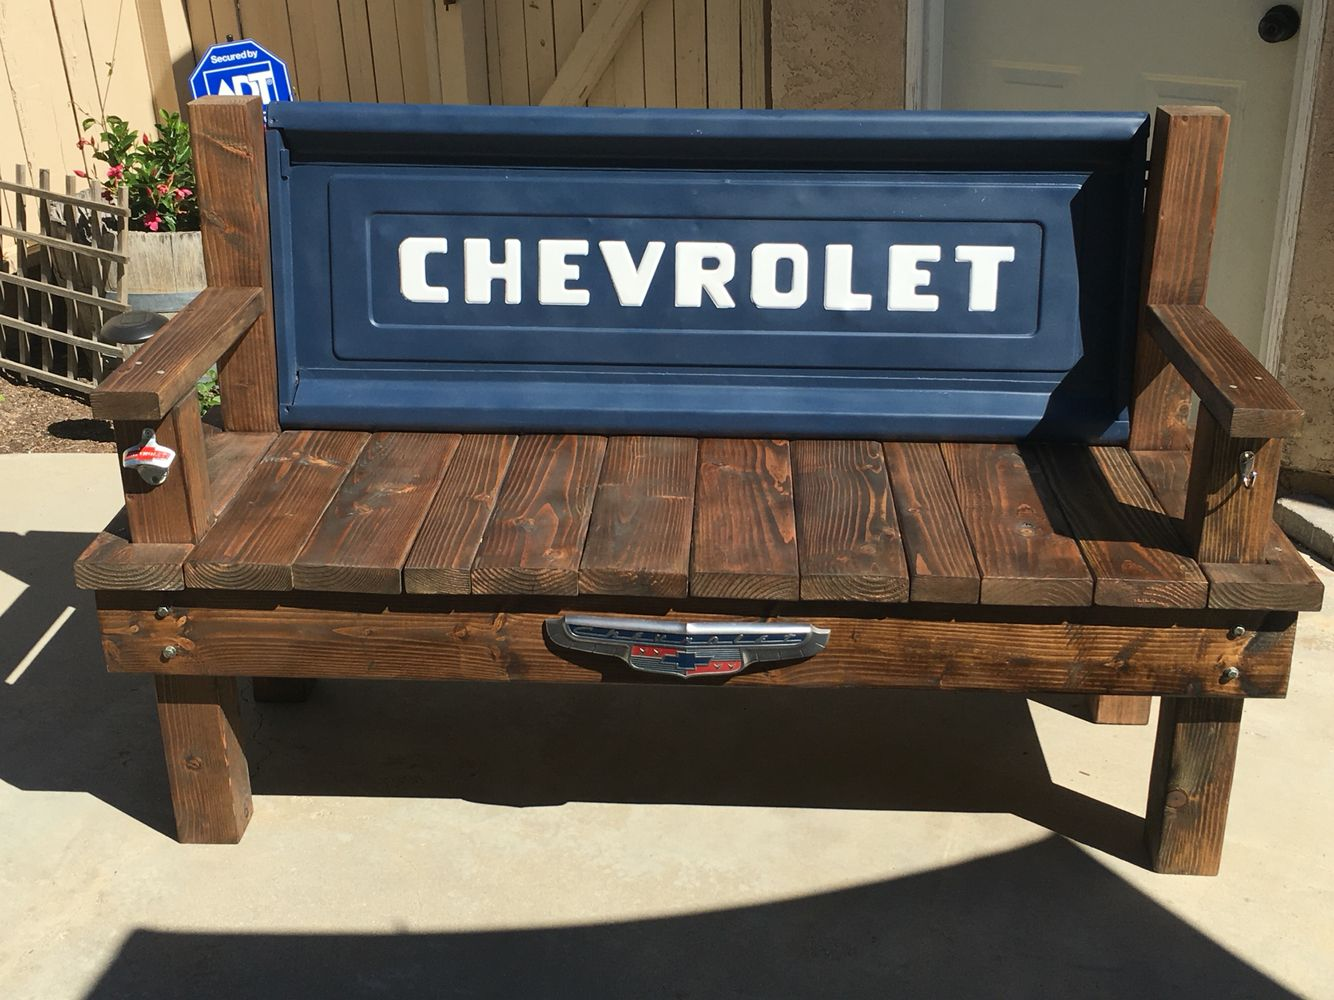 Chevy Tailgate Bench Diy Project Second Tailgate Bench Chevy Chevytailgate Chevybench Bench Diy Ru Tailgate Bench Chevy Tailgate Bench Woodworking Plans